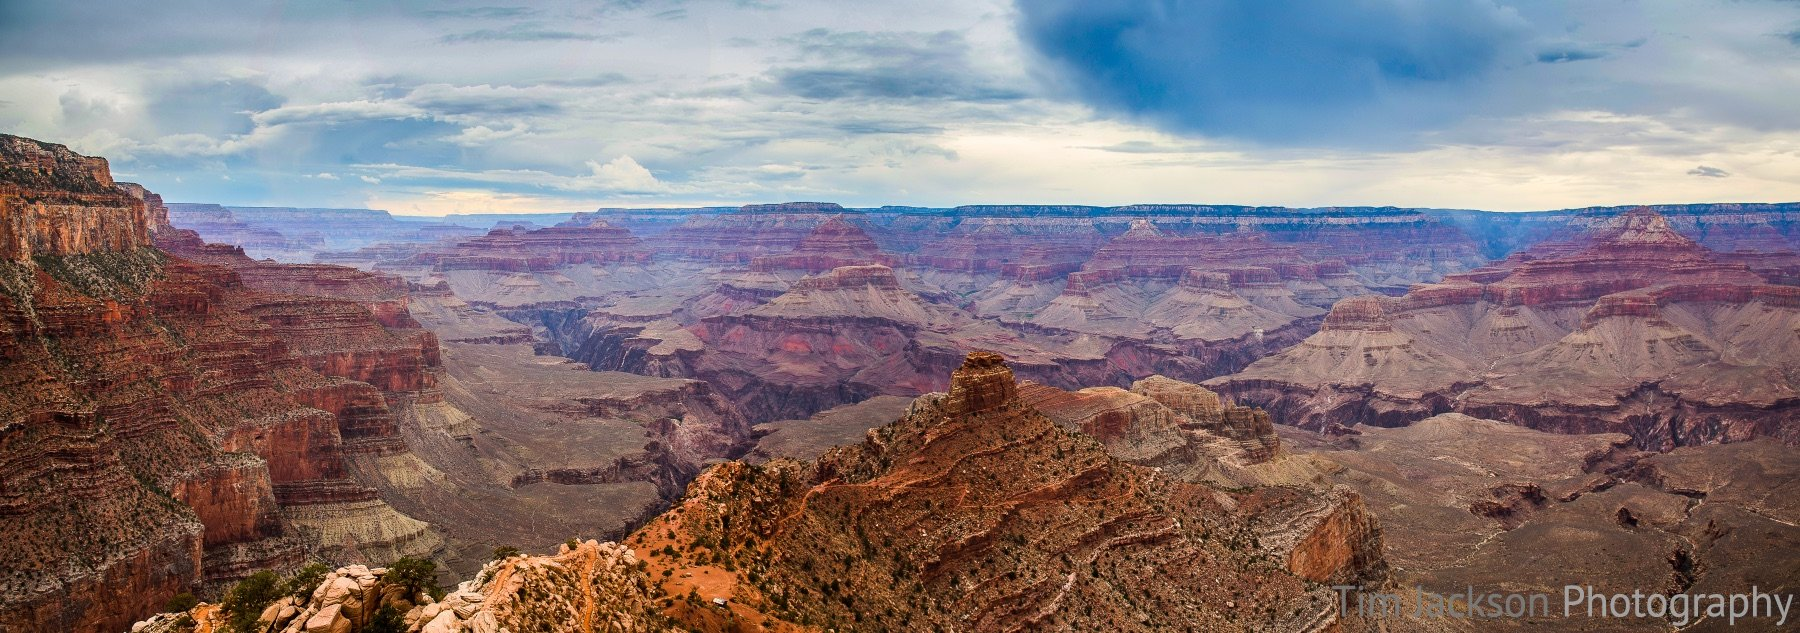 Grand Canyon Panorama Grand Canyon Panorama Photograph by Tim Jackson